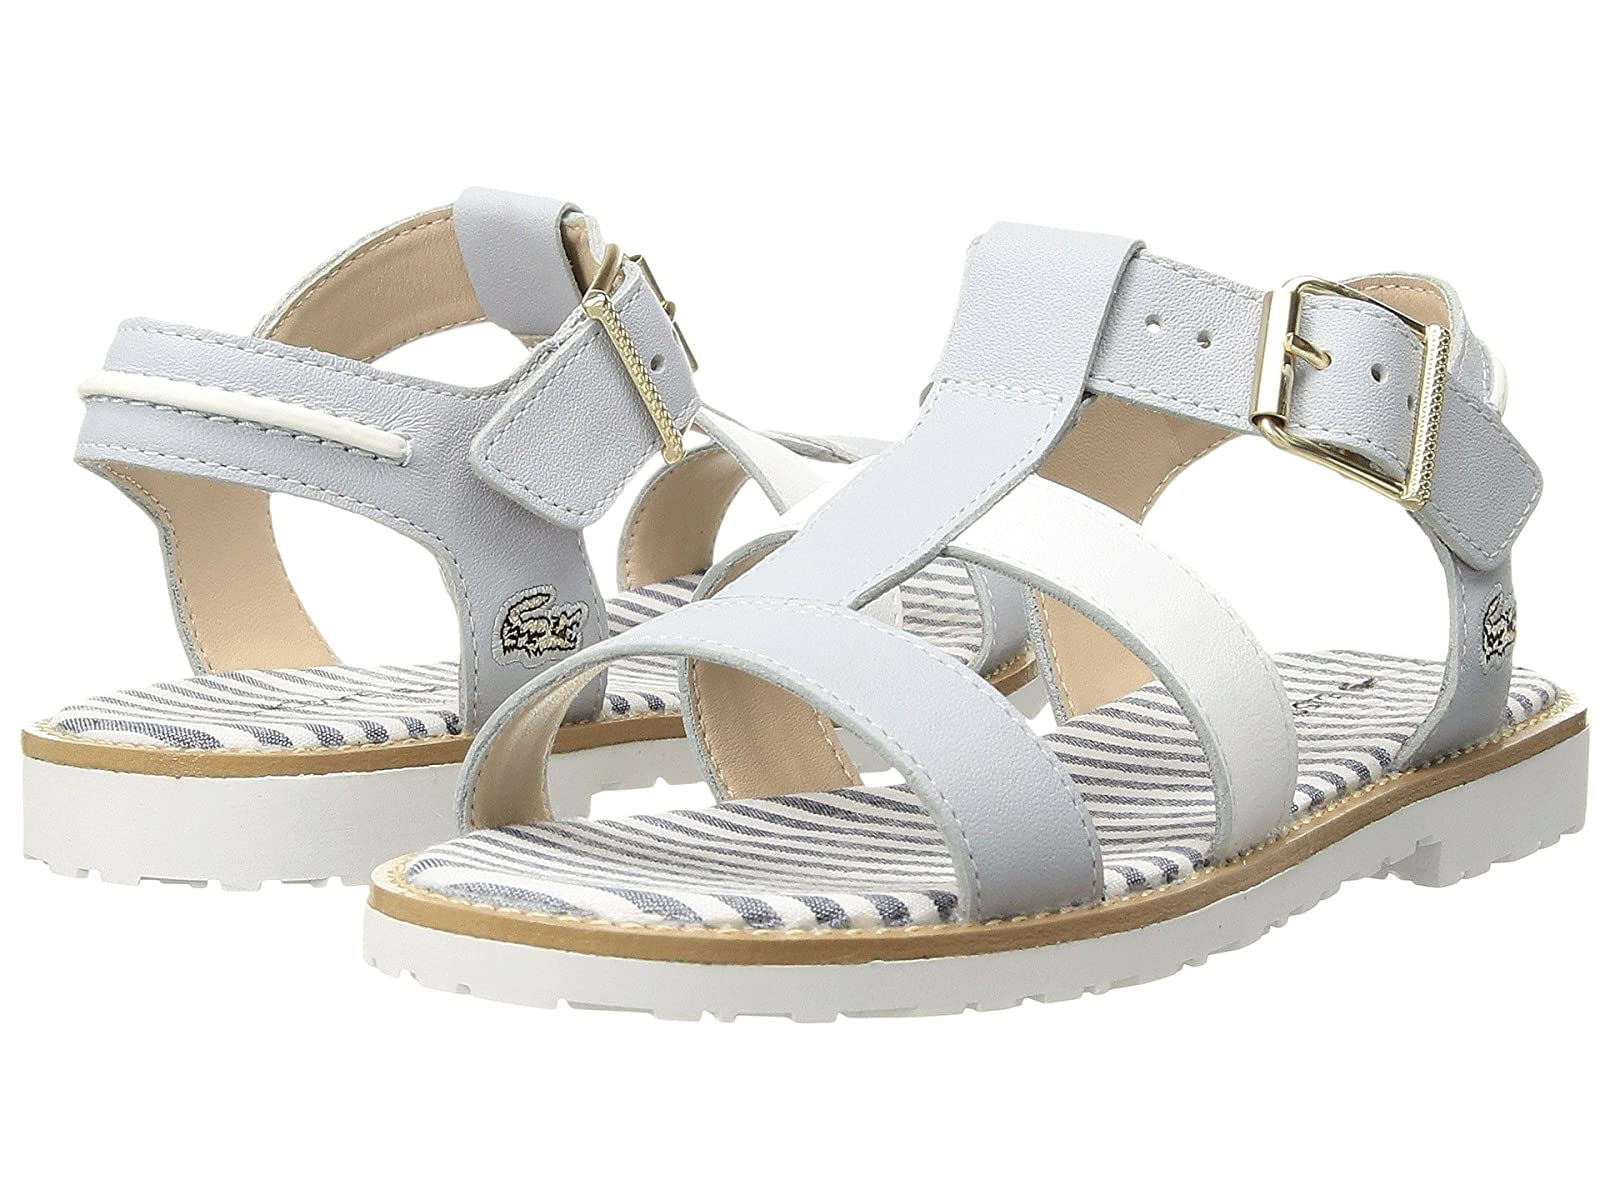 Lacoste Kids Jardena Sandal 217 1 (Little Kid)Cheap and distinctive eye-catching shoes